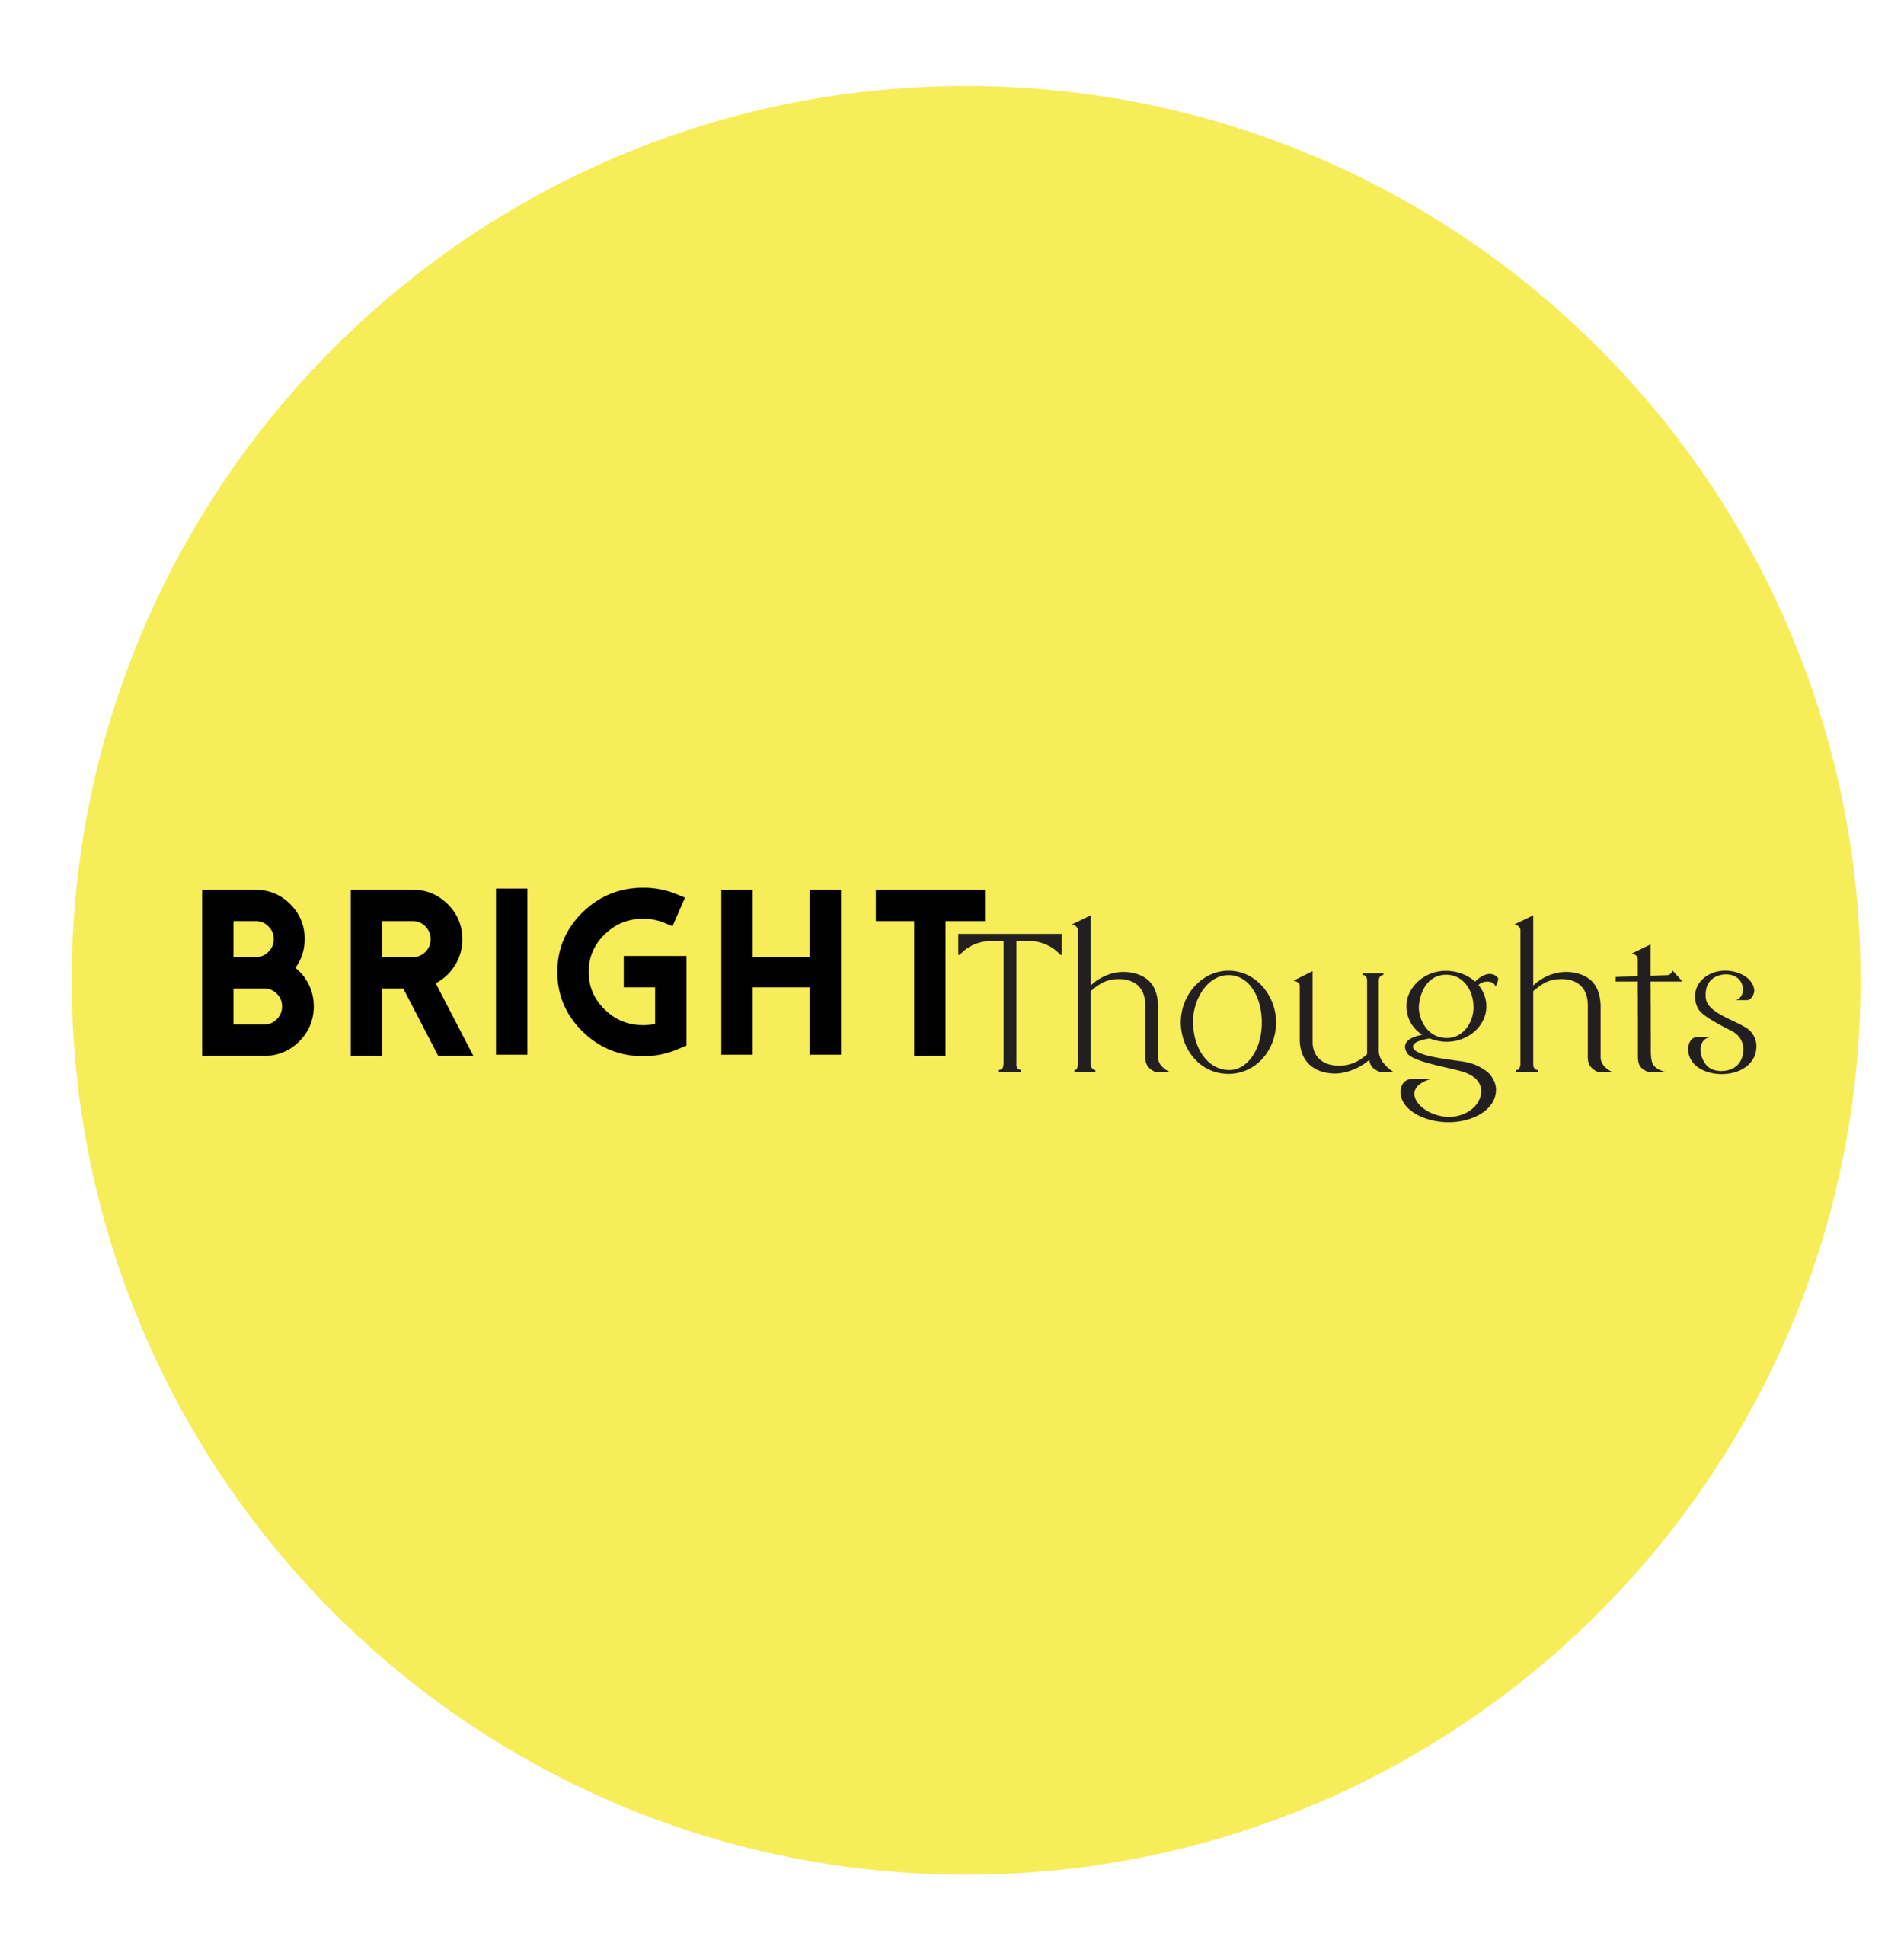 Bright Thoughts rebrand_Lemon Avatar copy.png